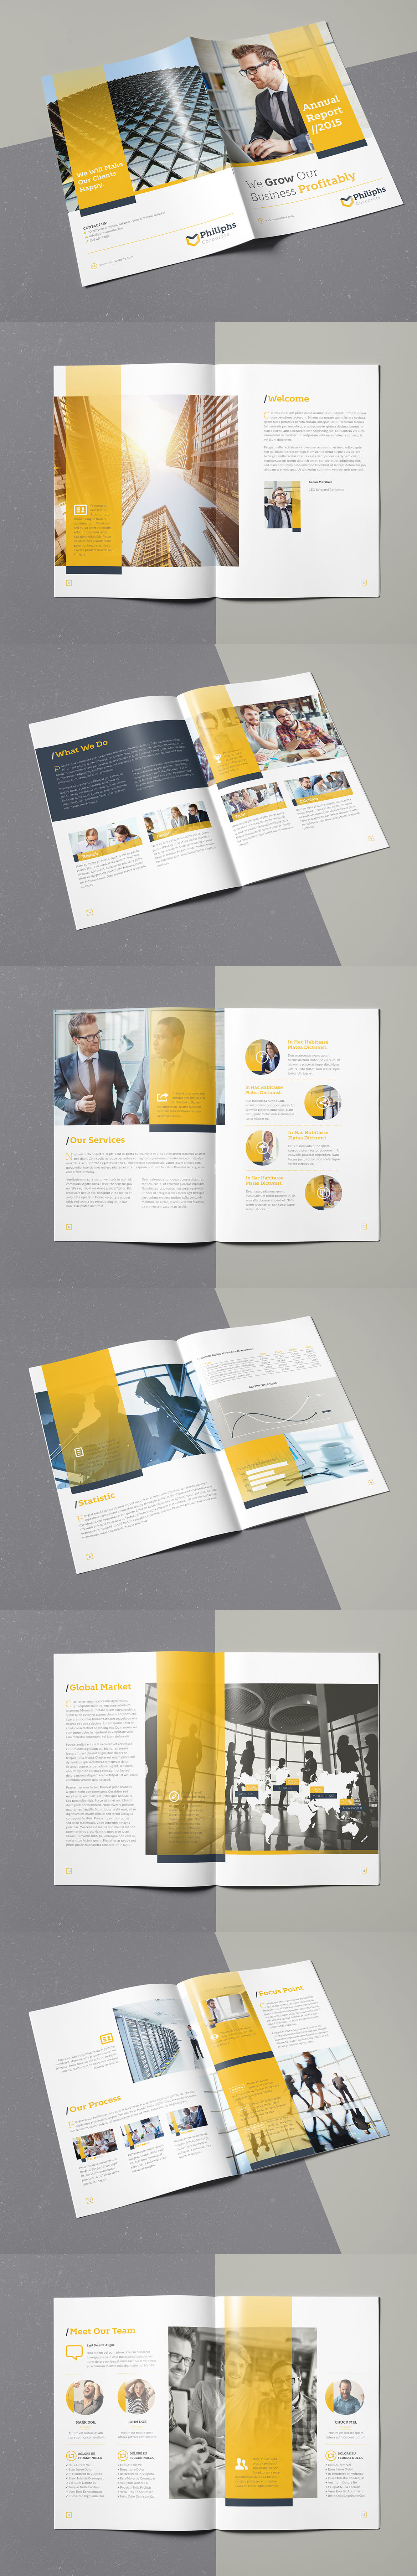 Annual Report Brochure 16 Pages A4 Template InDesign INDD | Brochure ...